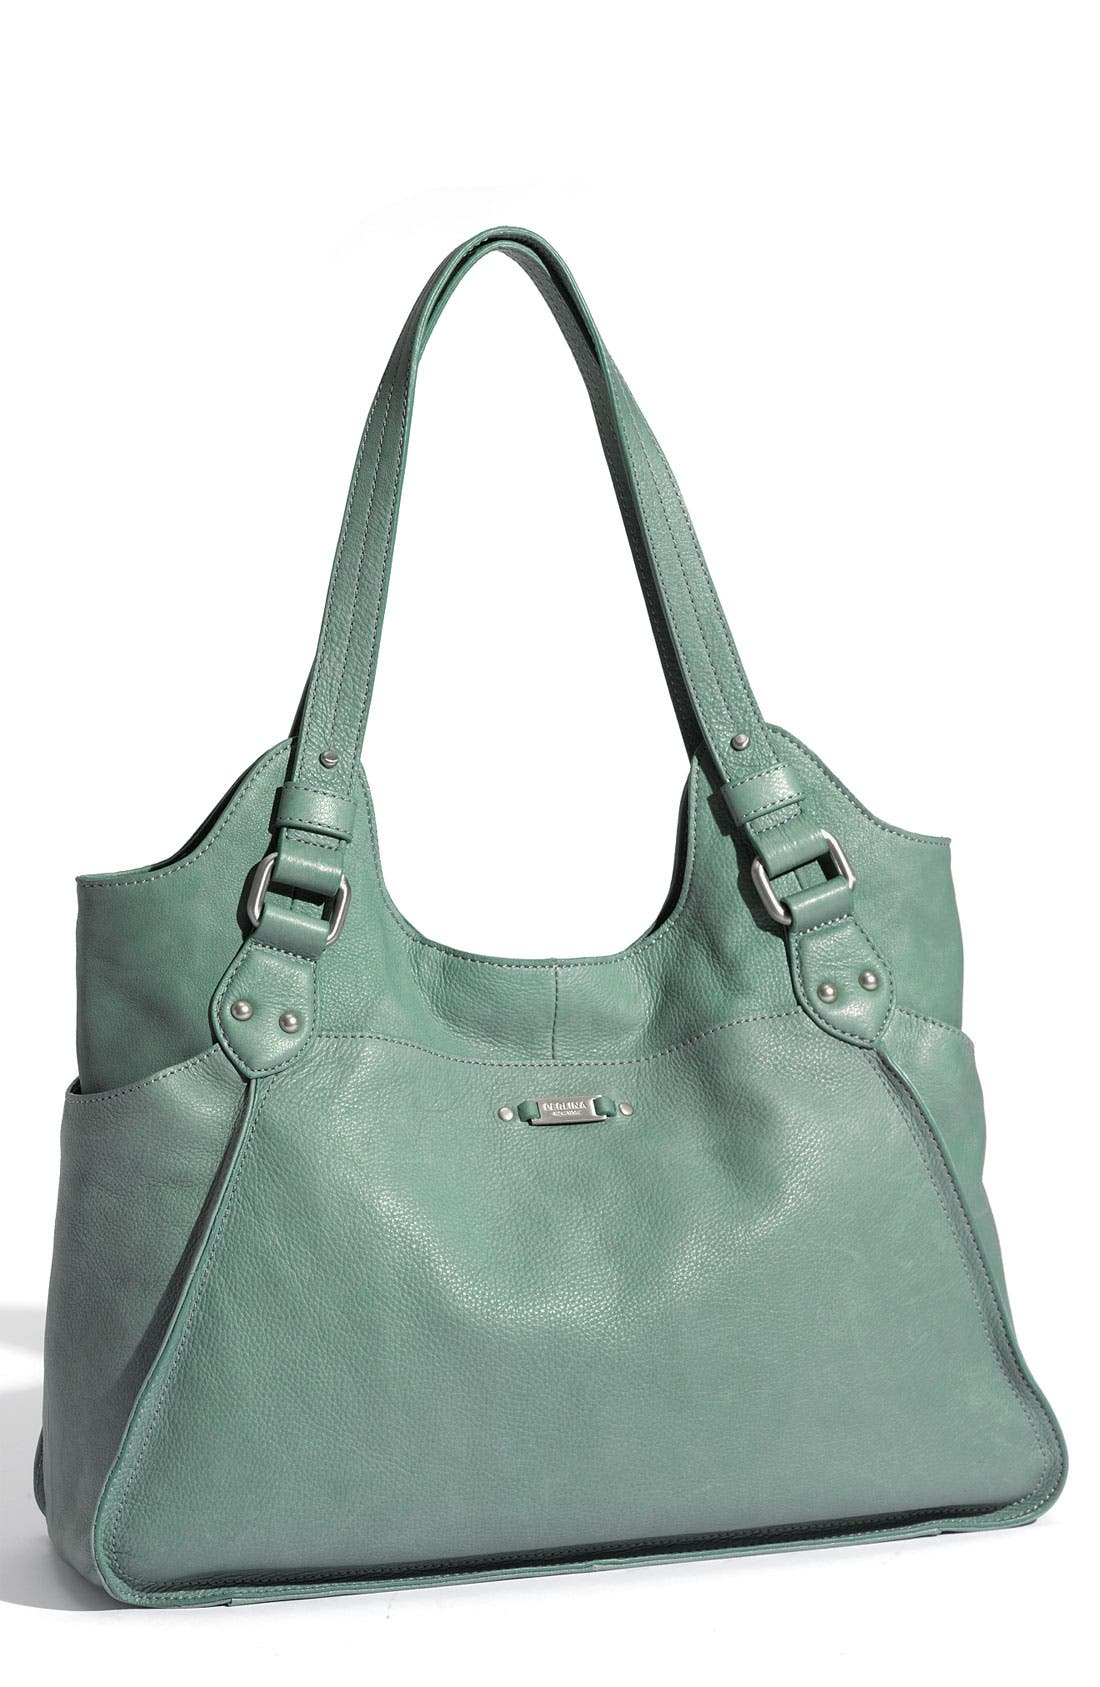 Alternate Image 1 Selected - Perlina 'Claire' Leather Tote